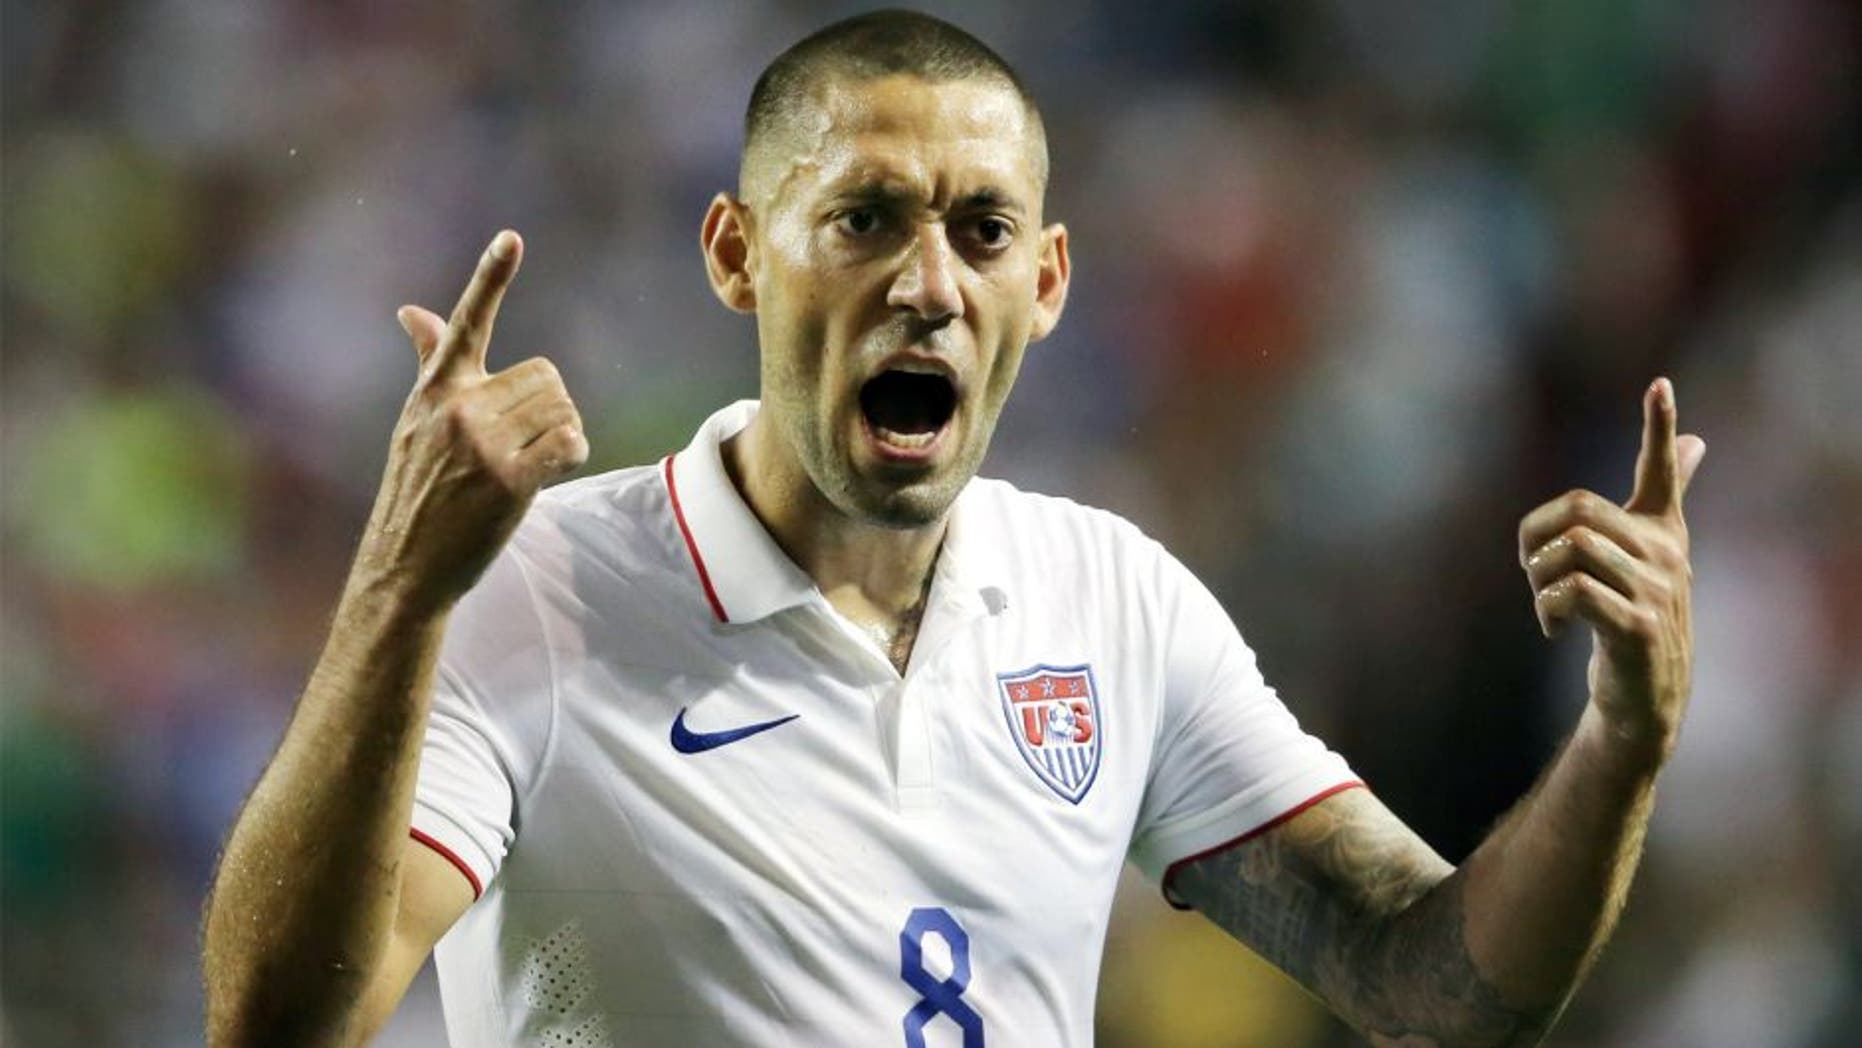 ATLANTA, GA - JULY 22: Clint Dempsey of United States of America yells during the 2015 CONCACAF Gold Cup Semifinal between USA and Jamaica at Georgia Dome on July 22, 2015 in Atlanta, Georgia. (Photo by Matthew Ashton - AMA/Getty Images)